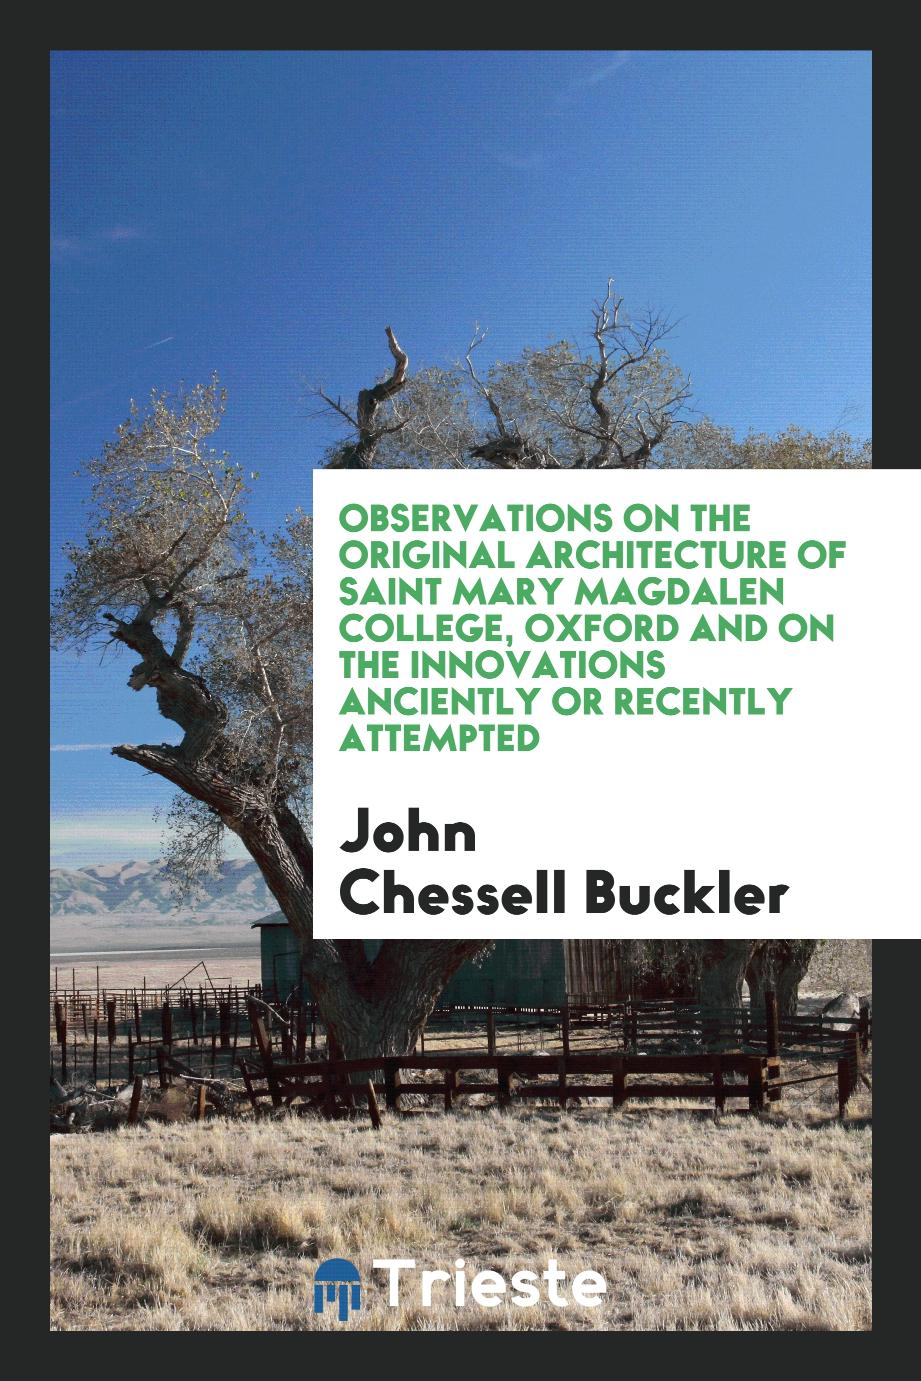 John  Chessell Buckler - Observations on the Original Architecture of Saint Mary Magdalen College, Oxford and on the Innovations Anciently or Recently Attempted